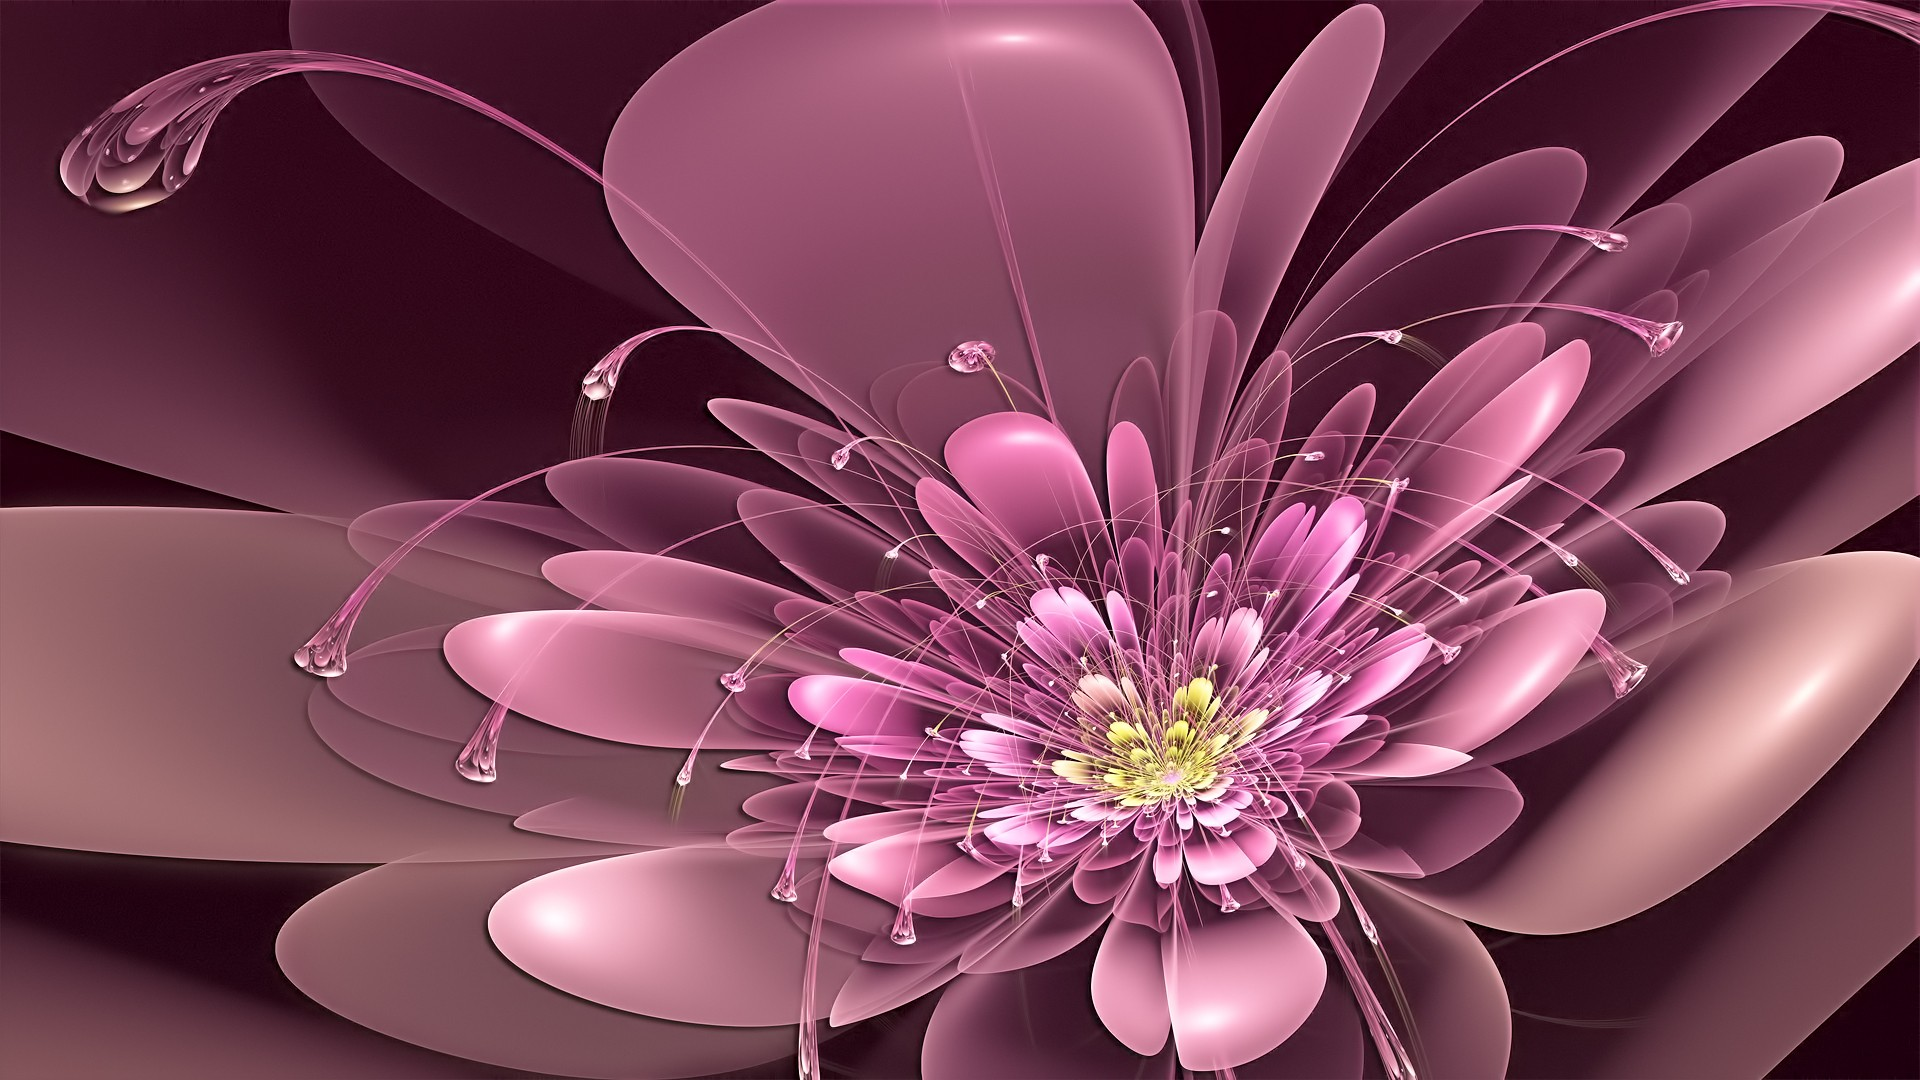 Hd Wallpaper Painting Of Abstract Flowers Wallpaper